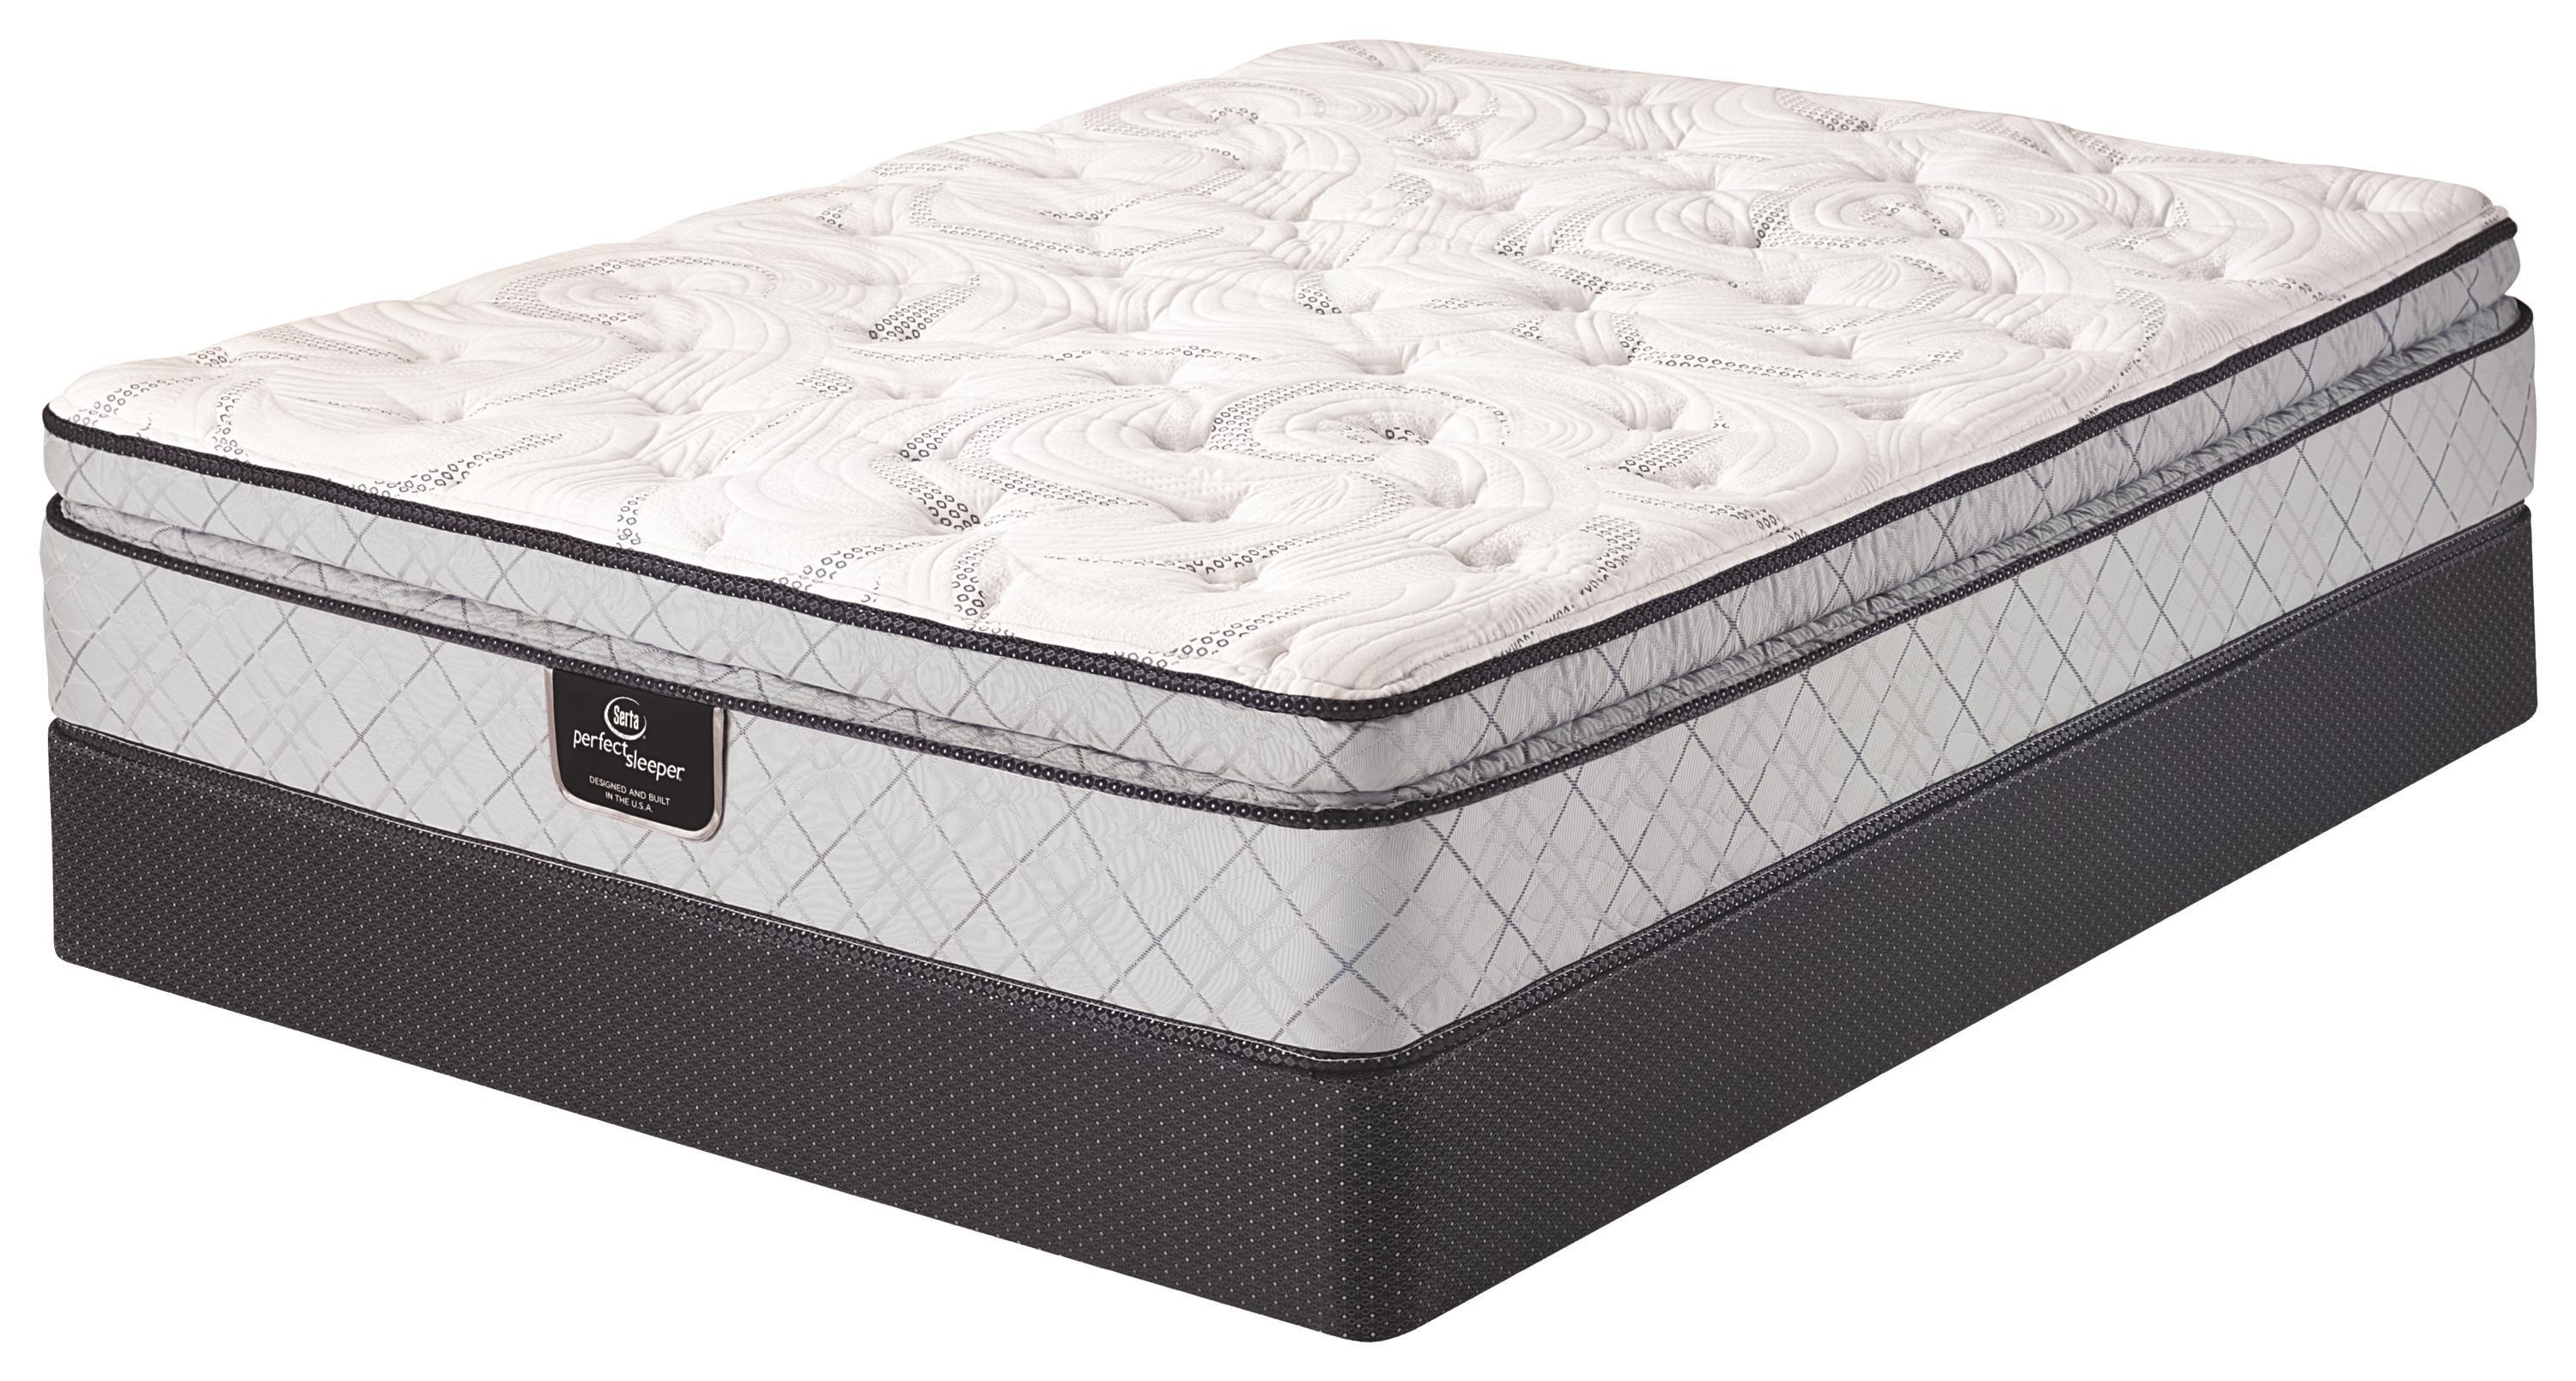 Cheap Queen Mattress Sets Near Me | Vertigino Mattress Throughout Queen Mattress Sets (Image 2 of 20)